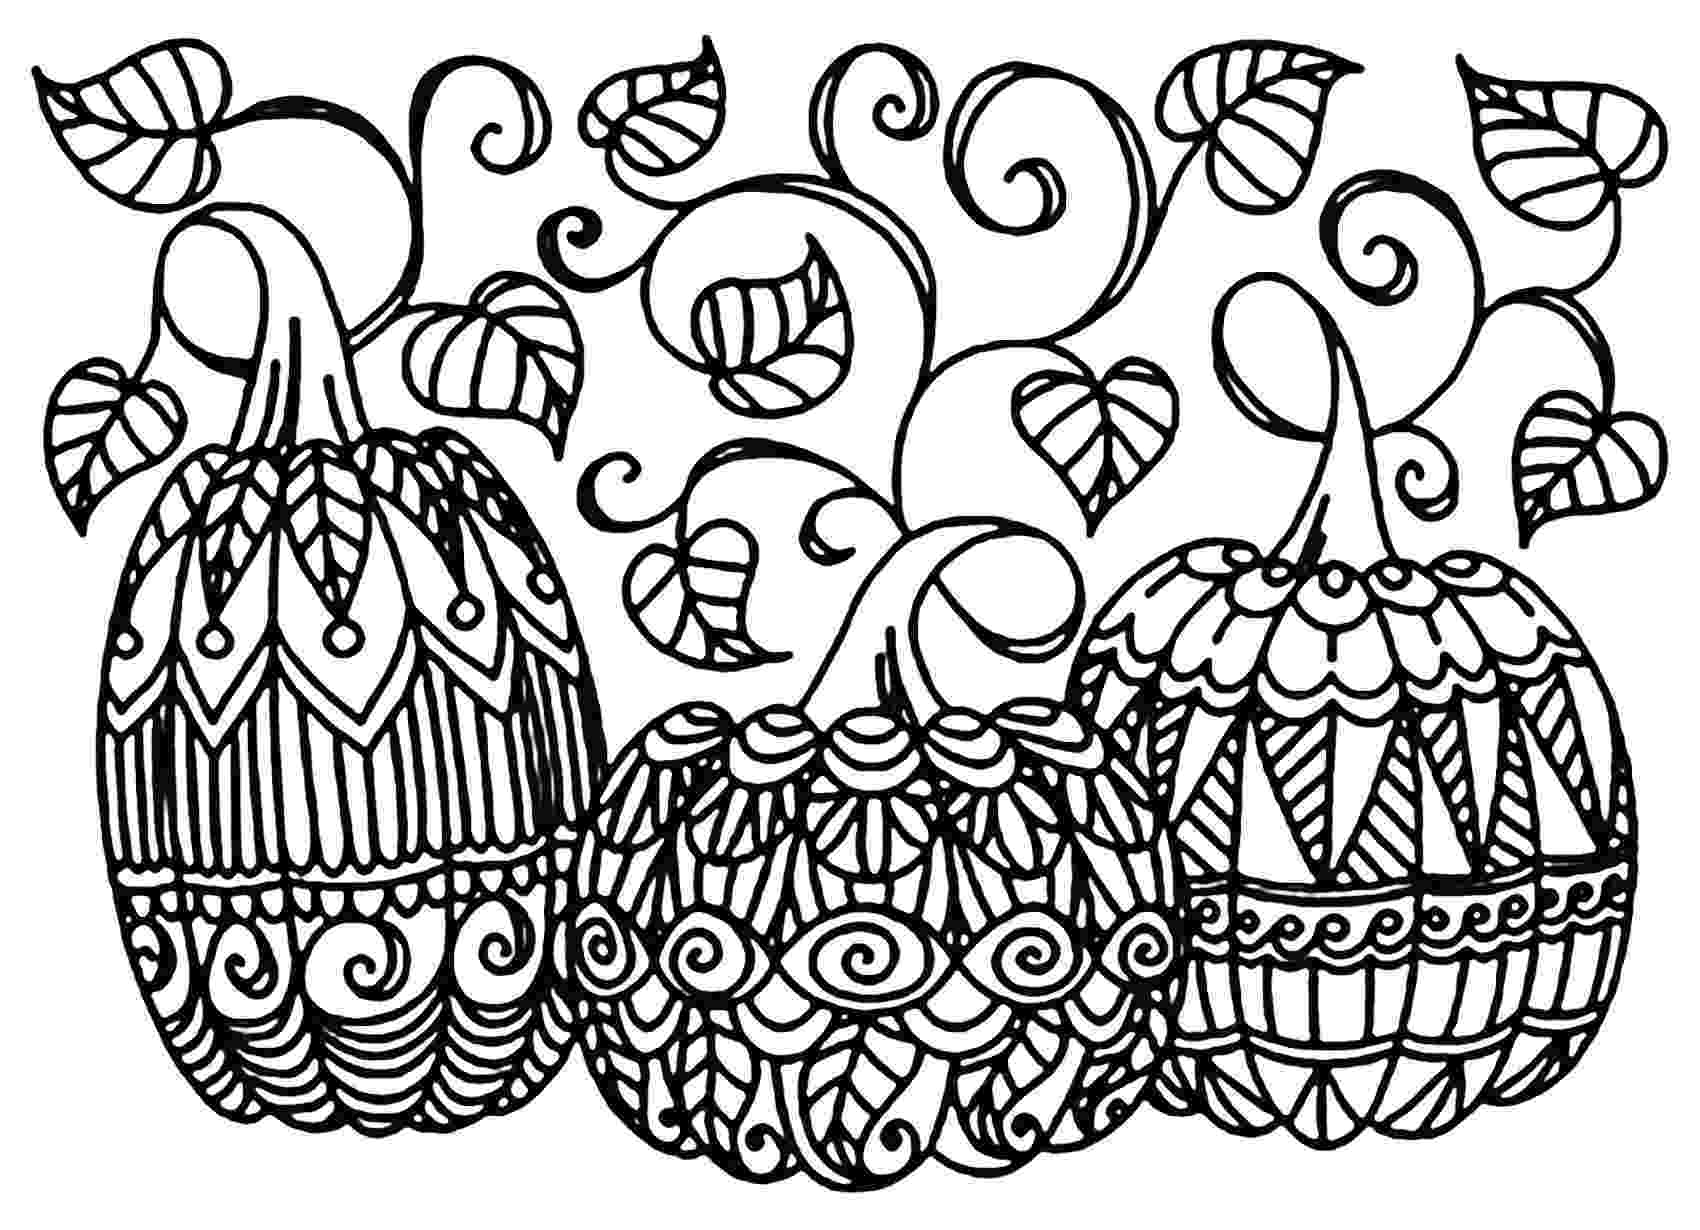 coloring pages for adults halloween free adult coloring book pages happy halloween by blue halloween adults coloring for pages